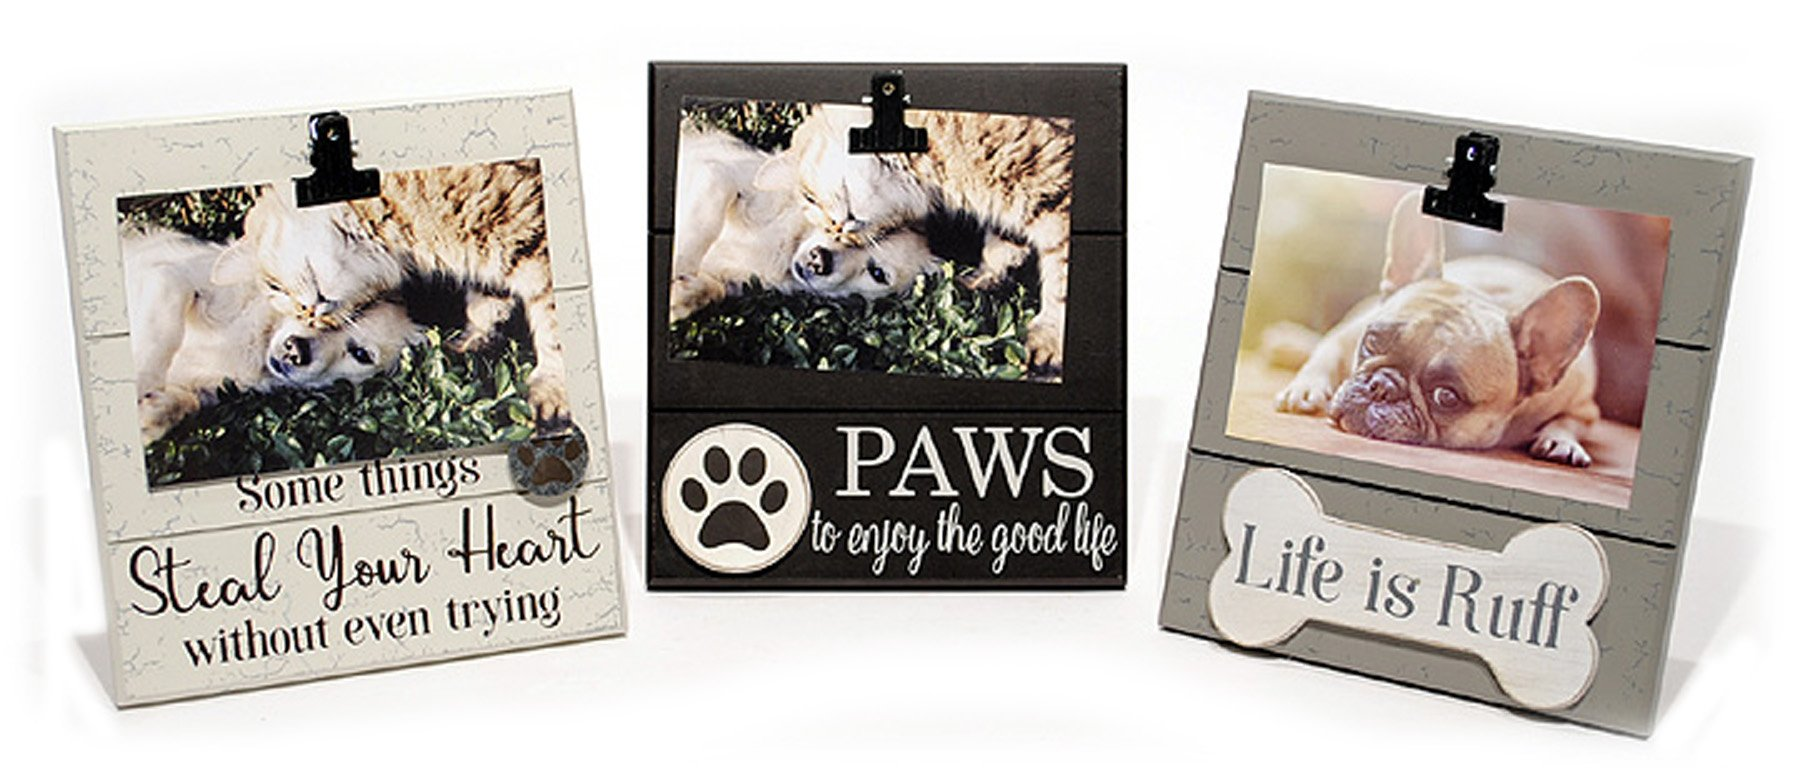 youngs Wood Pet Paws (Dog or Cat) Photo Clip Picture Holder - Set of 3